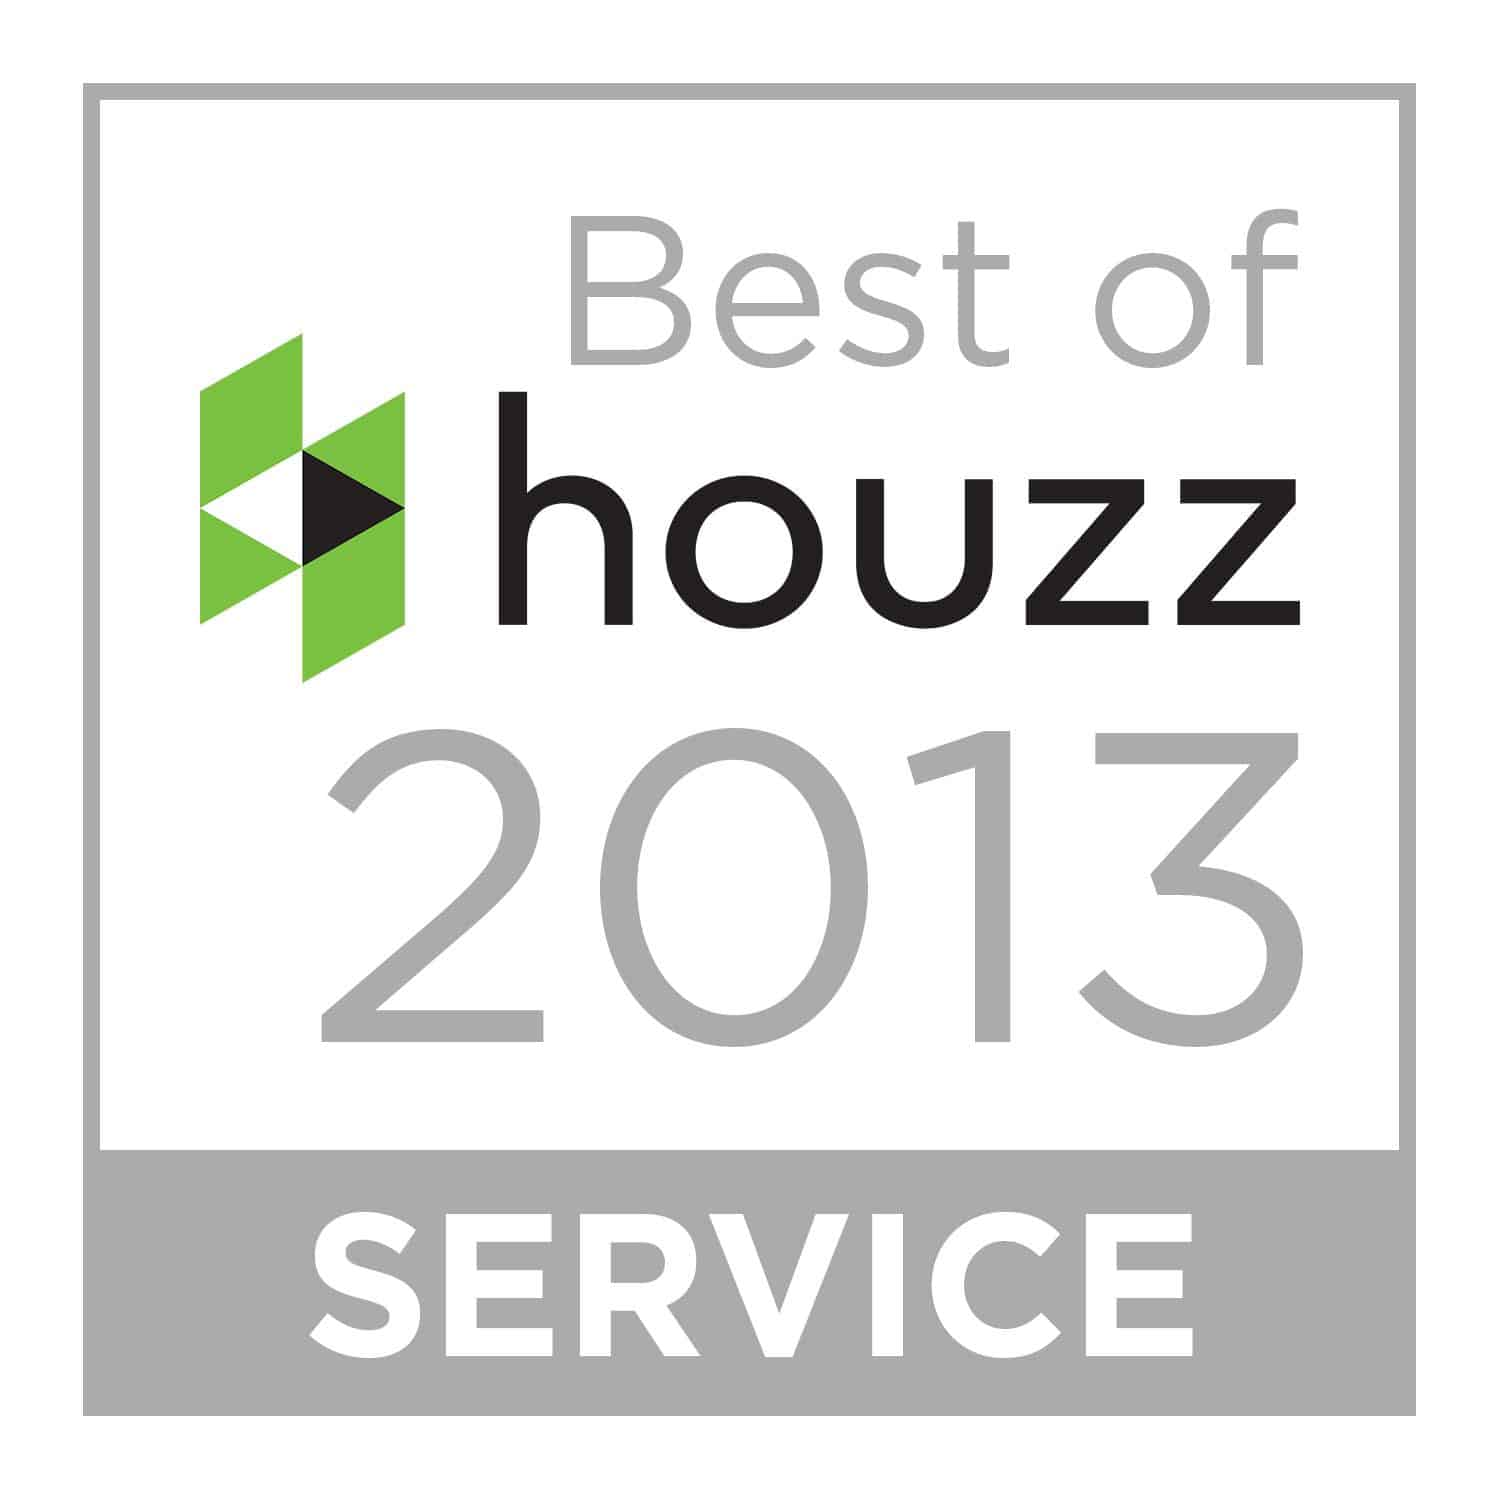 Wine Cellar Specialists won Best of Houzz in 2013 for Service